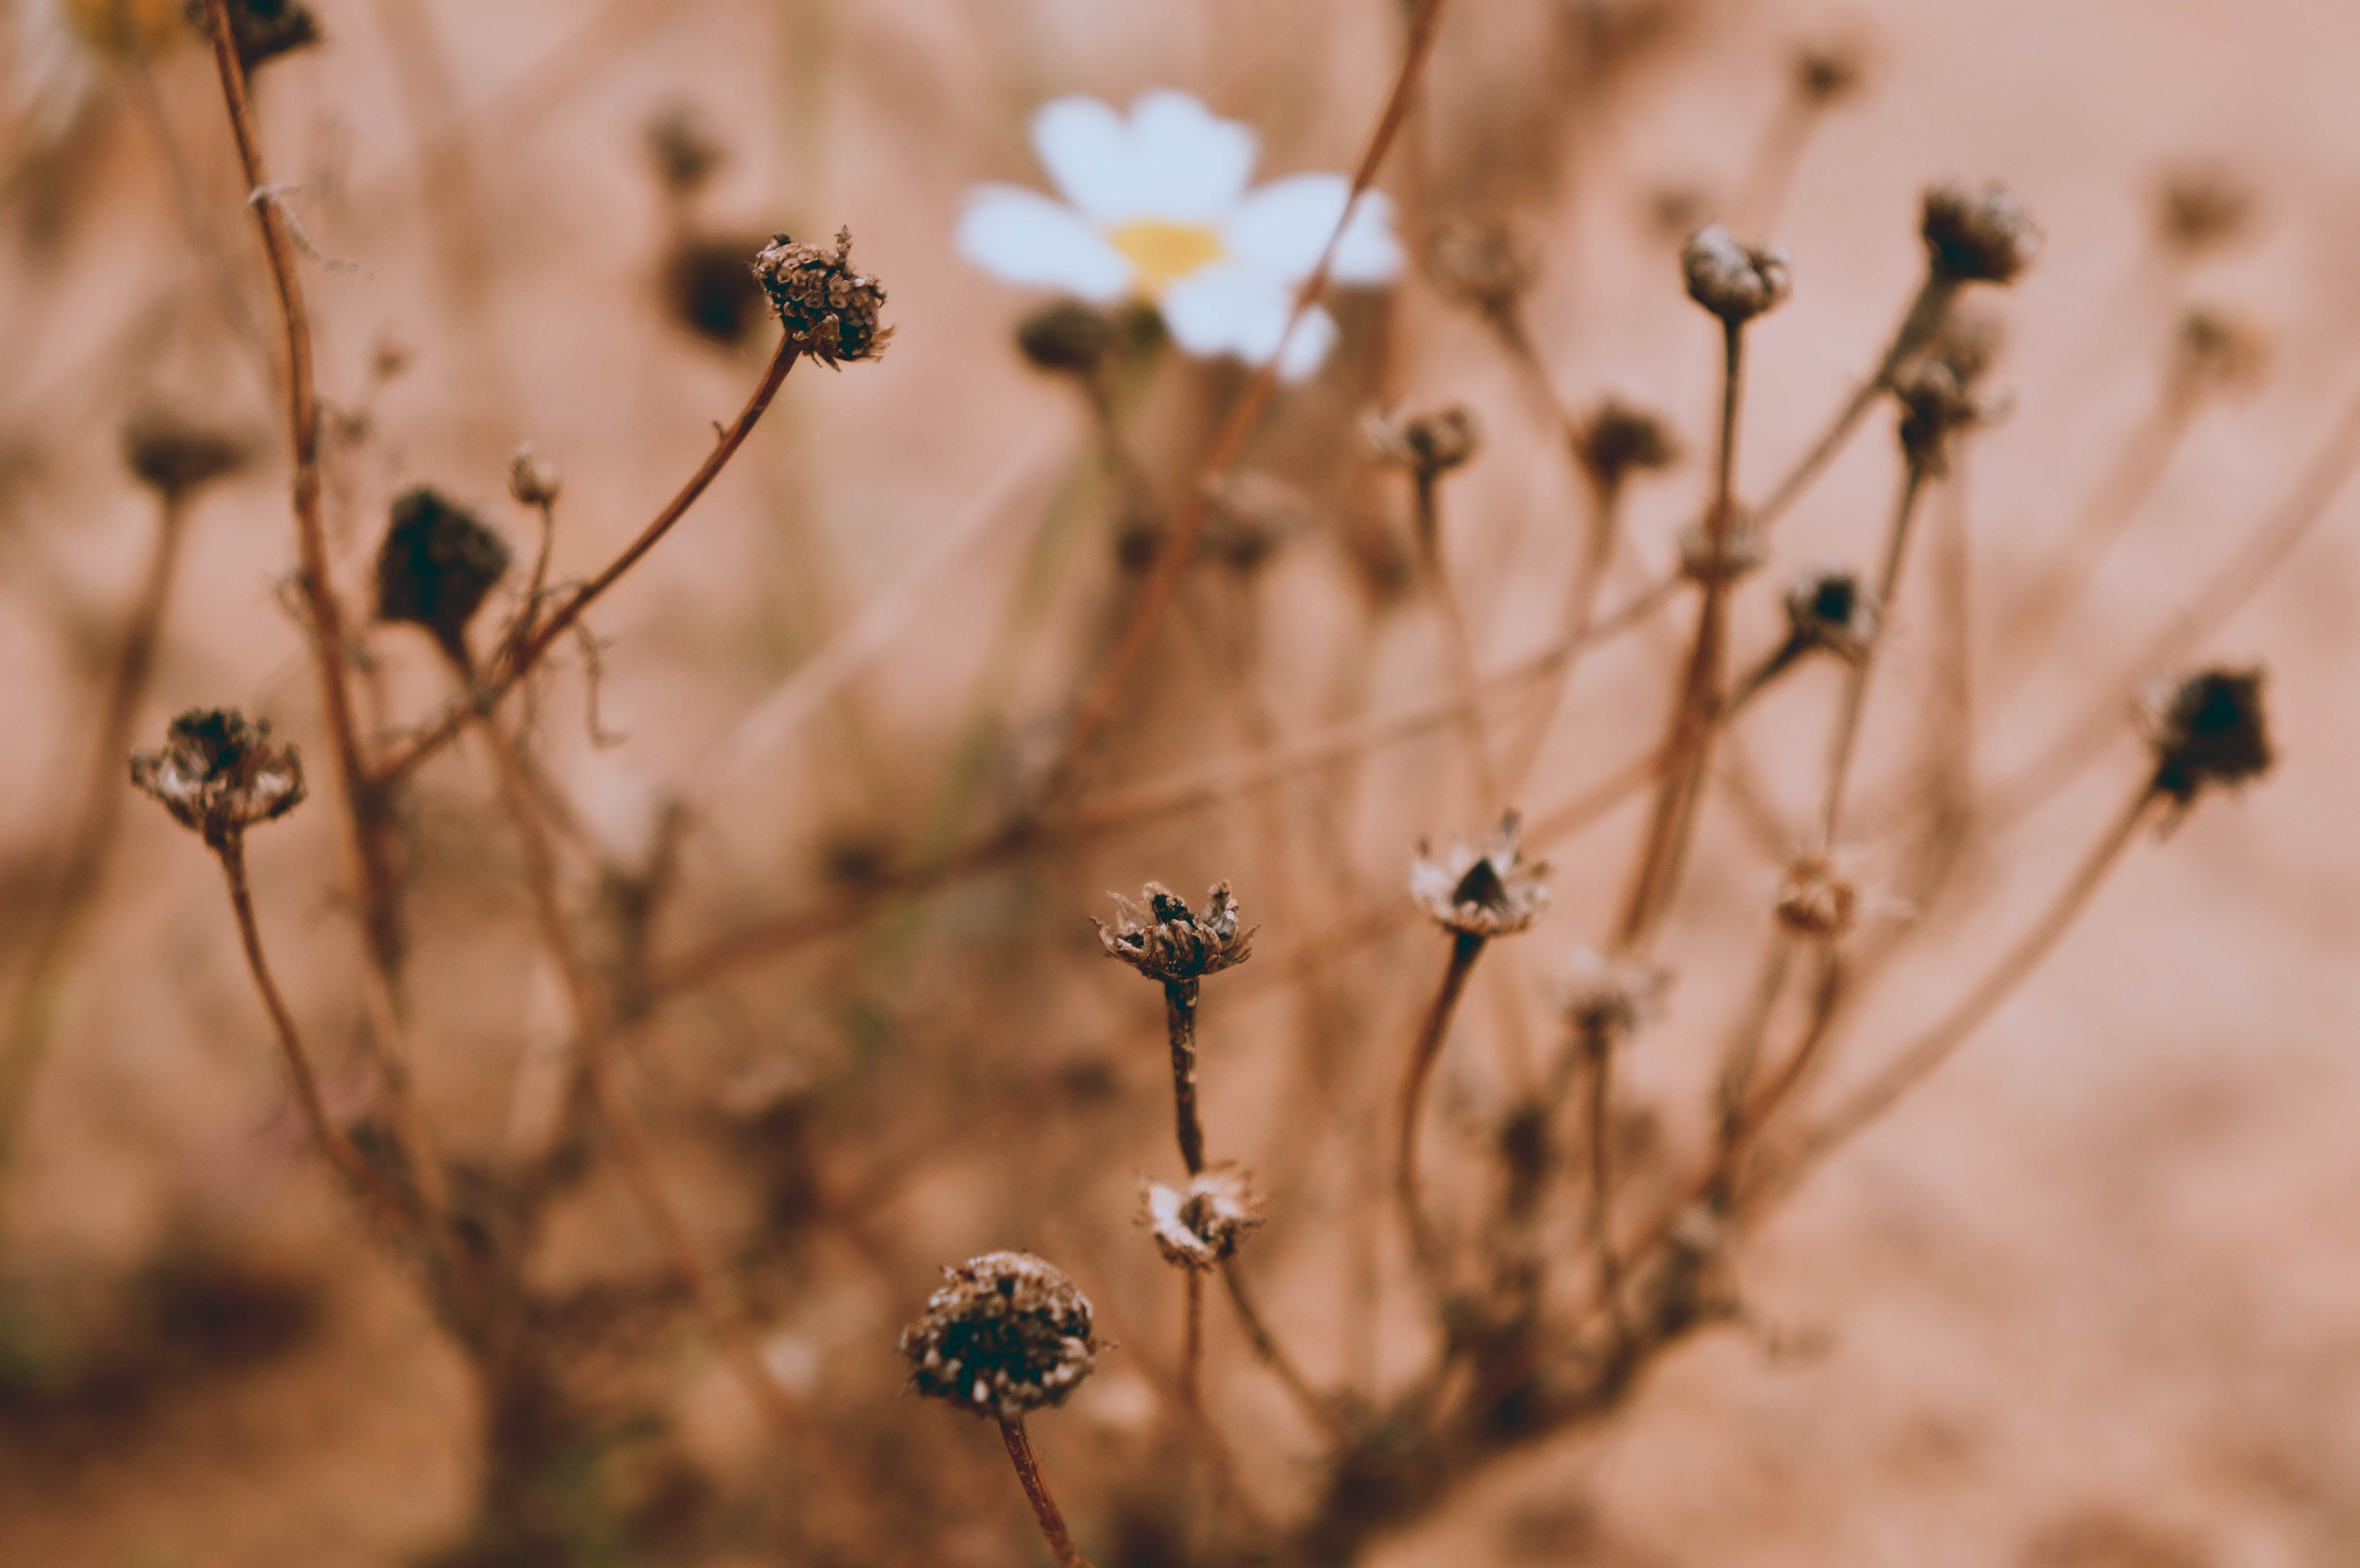 Free stock photo of #nature #flower #summer #warm #day #beautiful